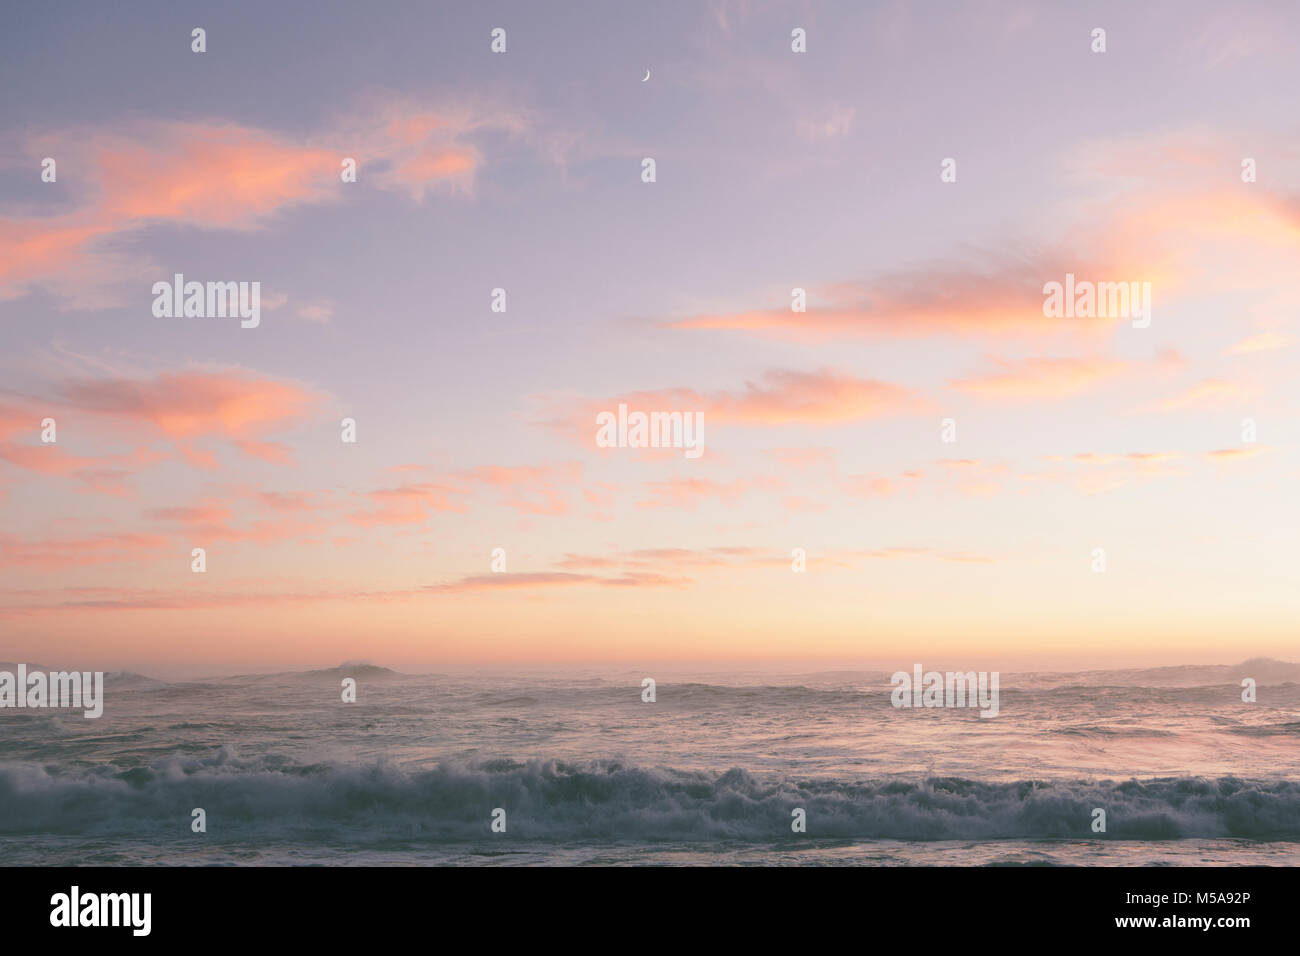 Seascape with cloudy sky at sunset. - Stock Image